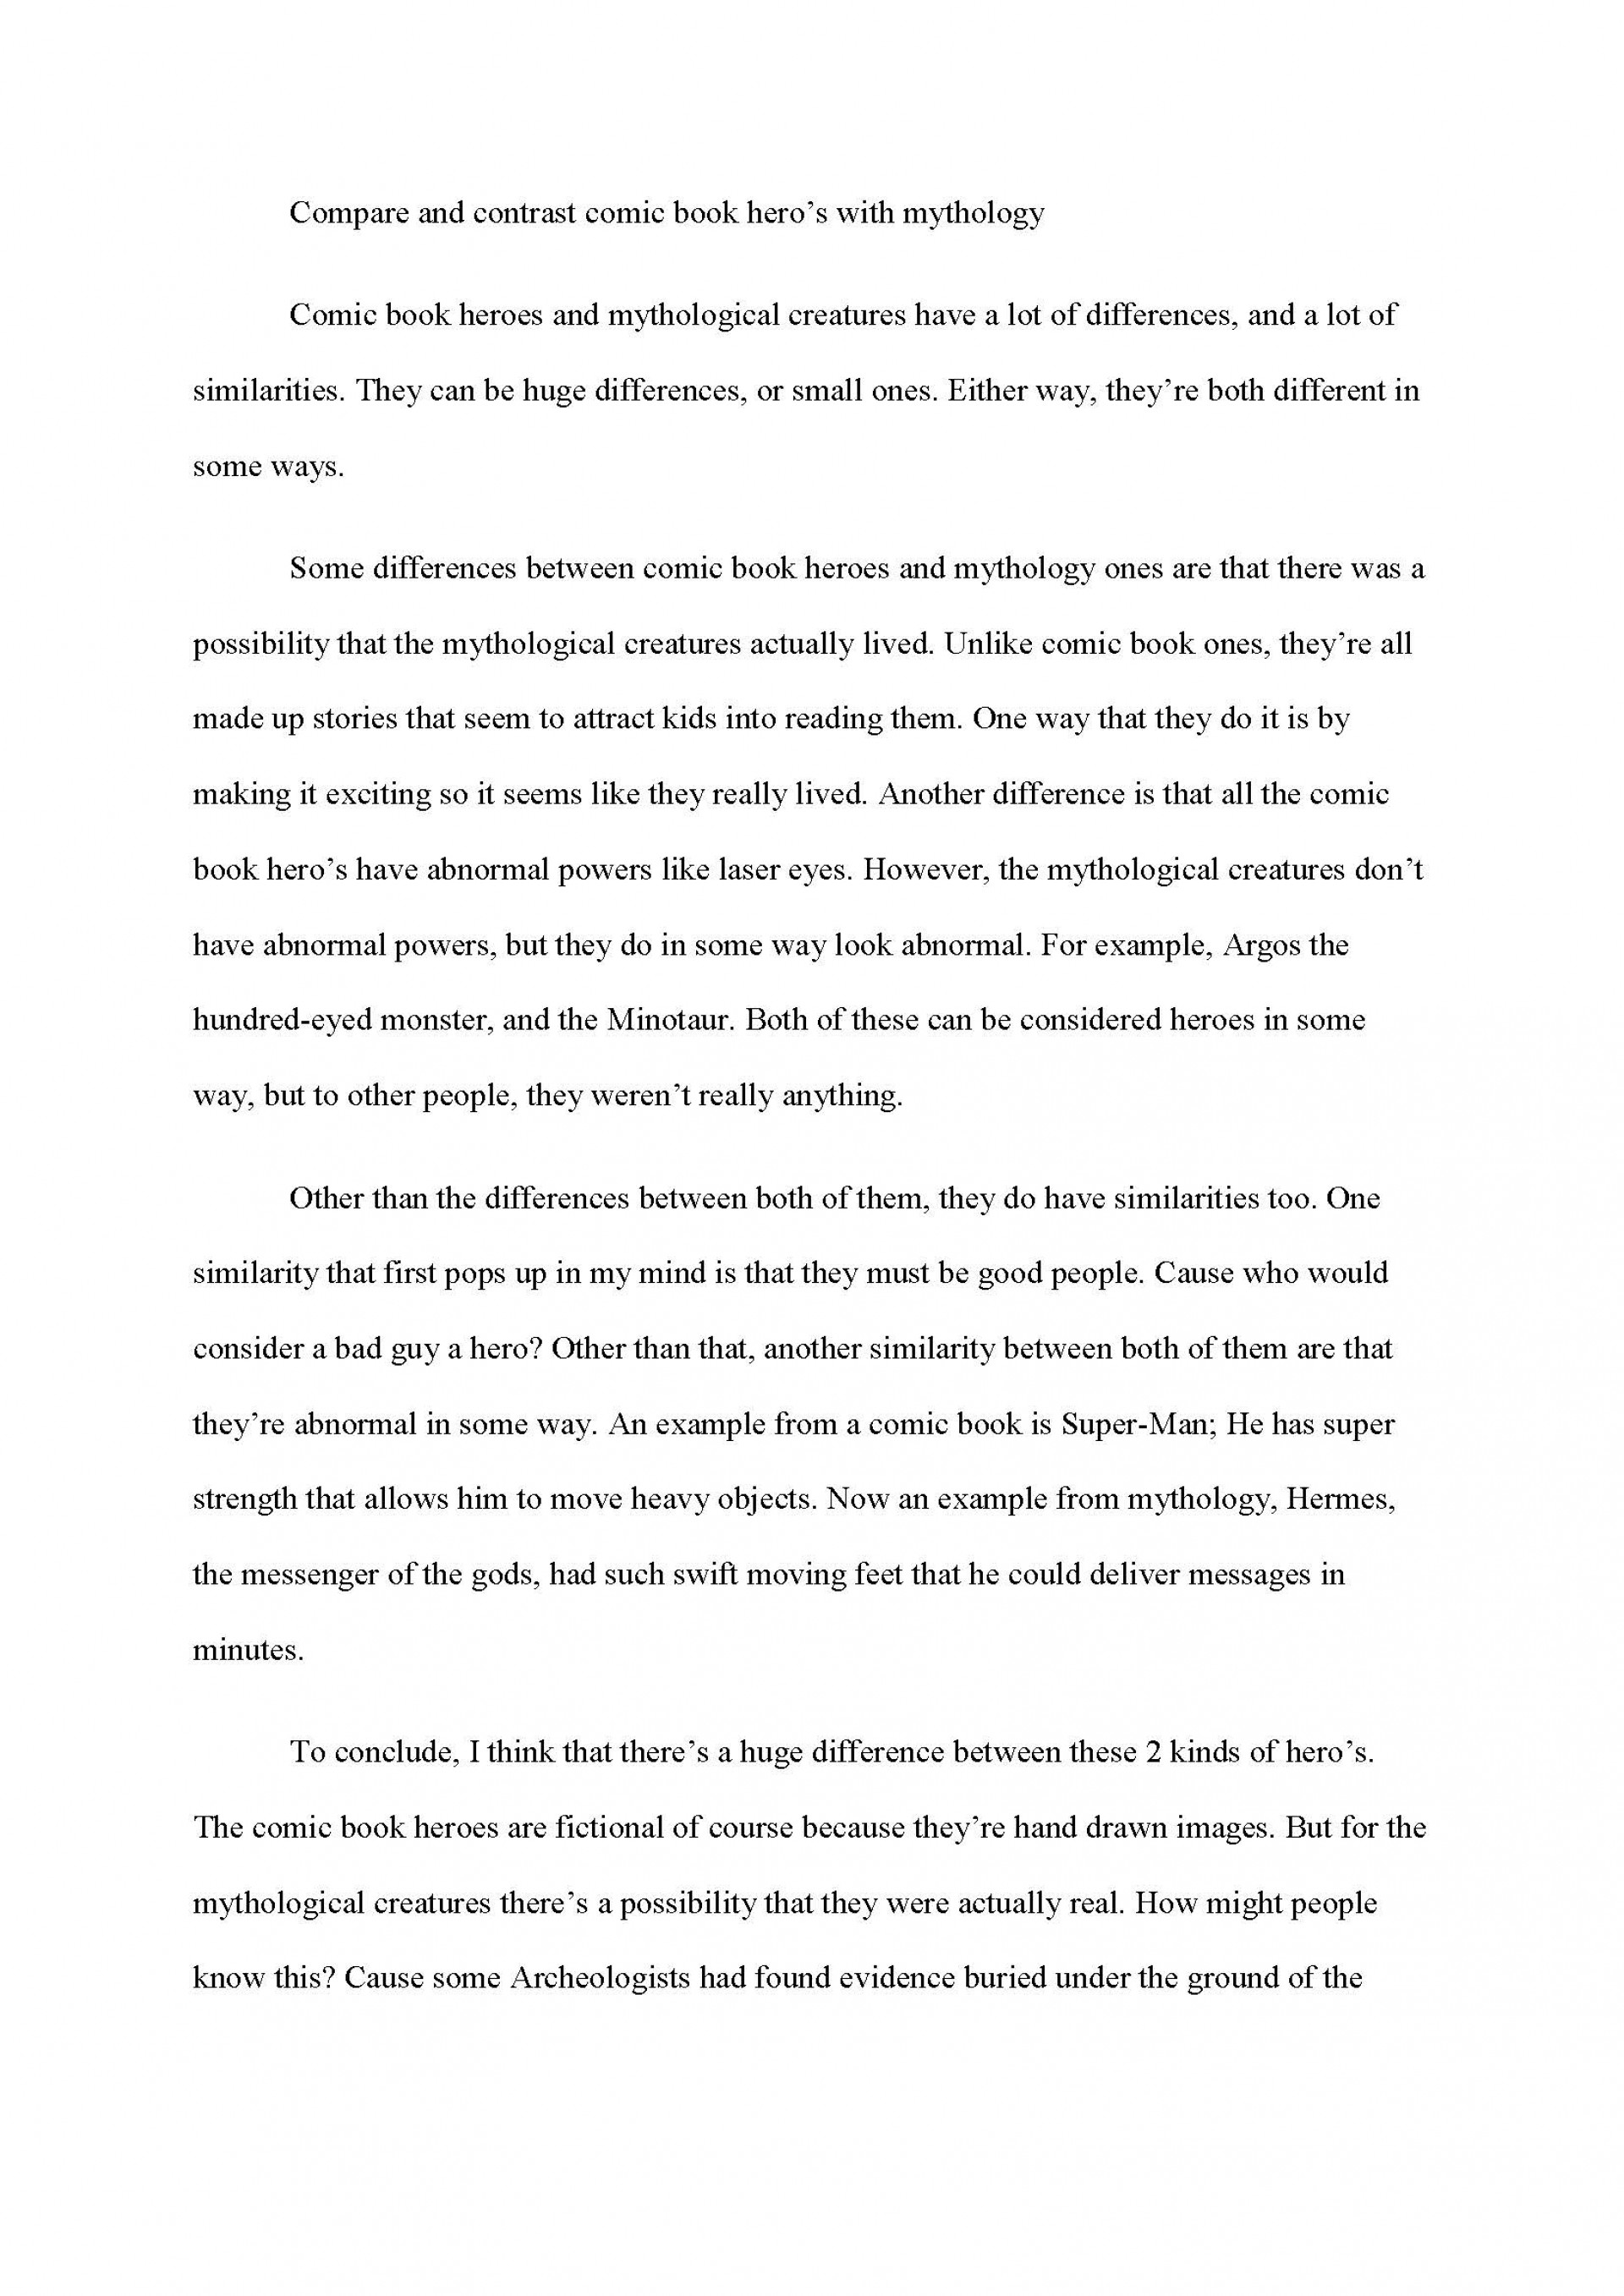 006 Compare And Contrast Essay Conclusion Example Staggering High School College 1920